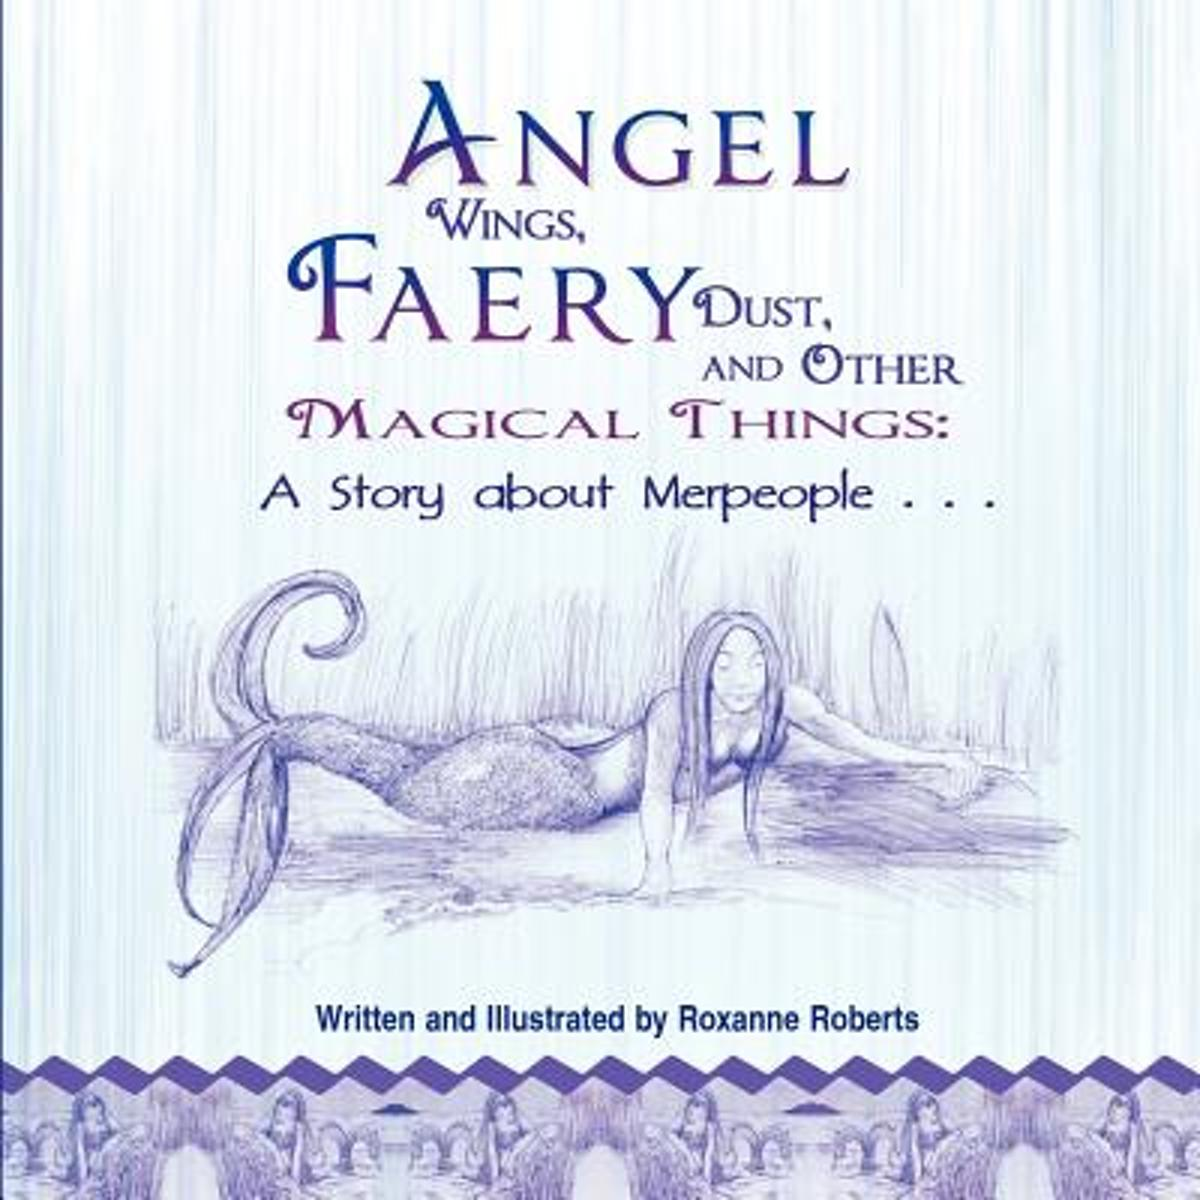 Angel Wings, Faery Dust and Other Magical Things